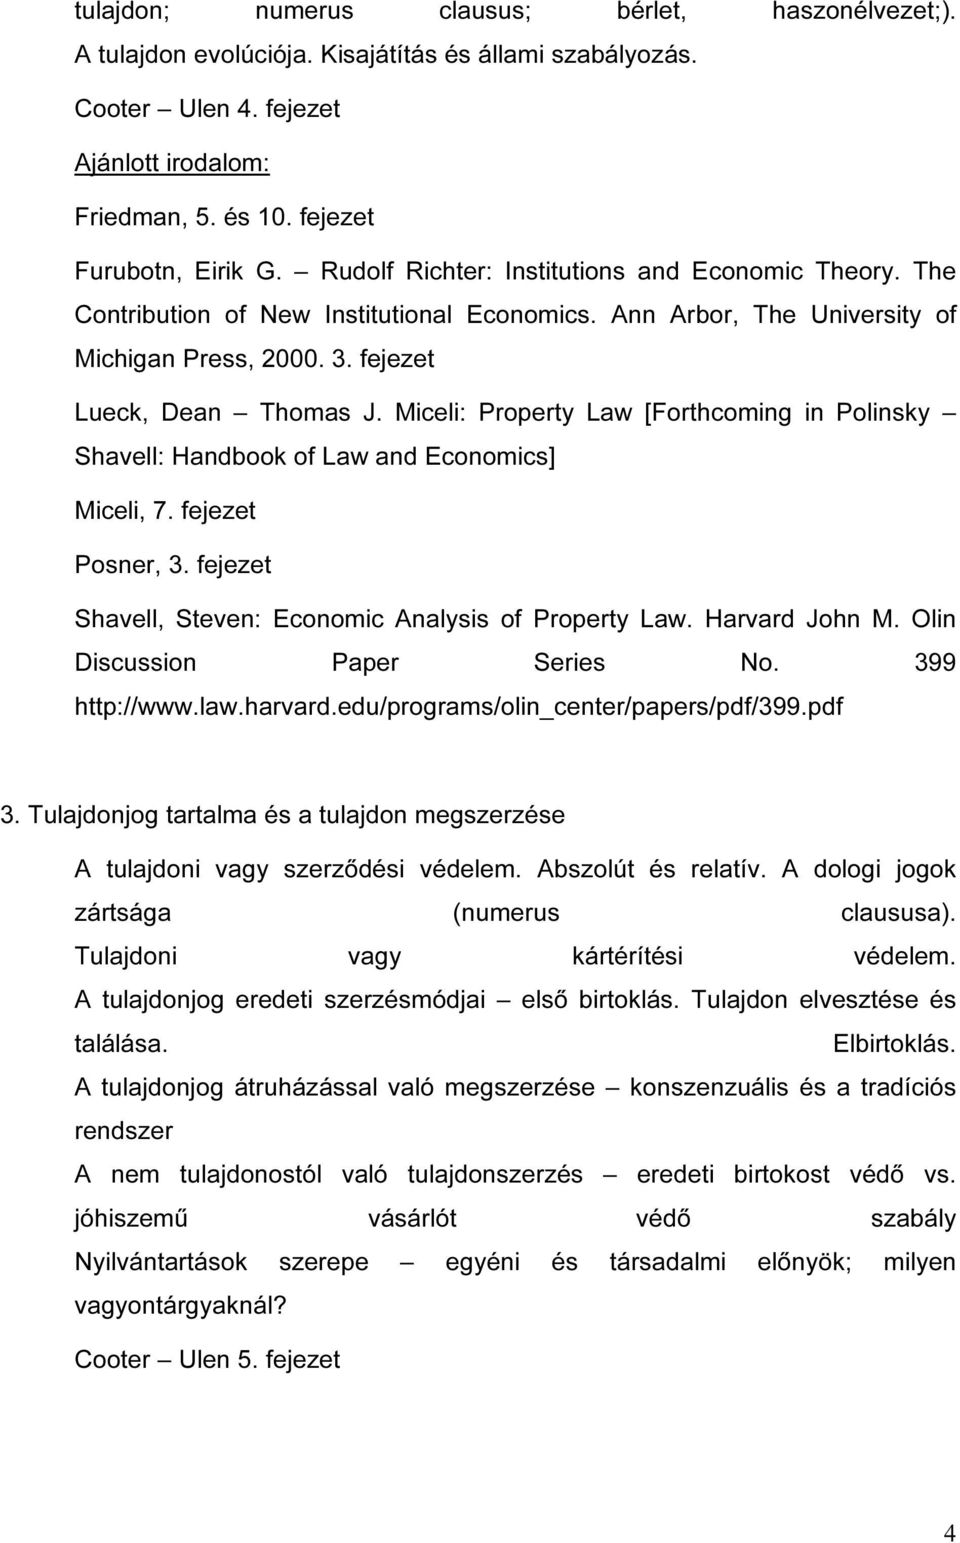 Miceli: Property Law [Forthcoming in Polinsky Shavell: Handbook of Law and Economics] Miceli, 7. fejezet Posner, 3. fejezet Shavell, Steven: Economic Analysis of Property Law. Harvard John M.